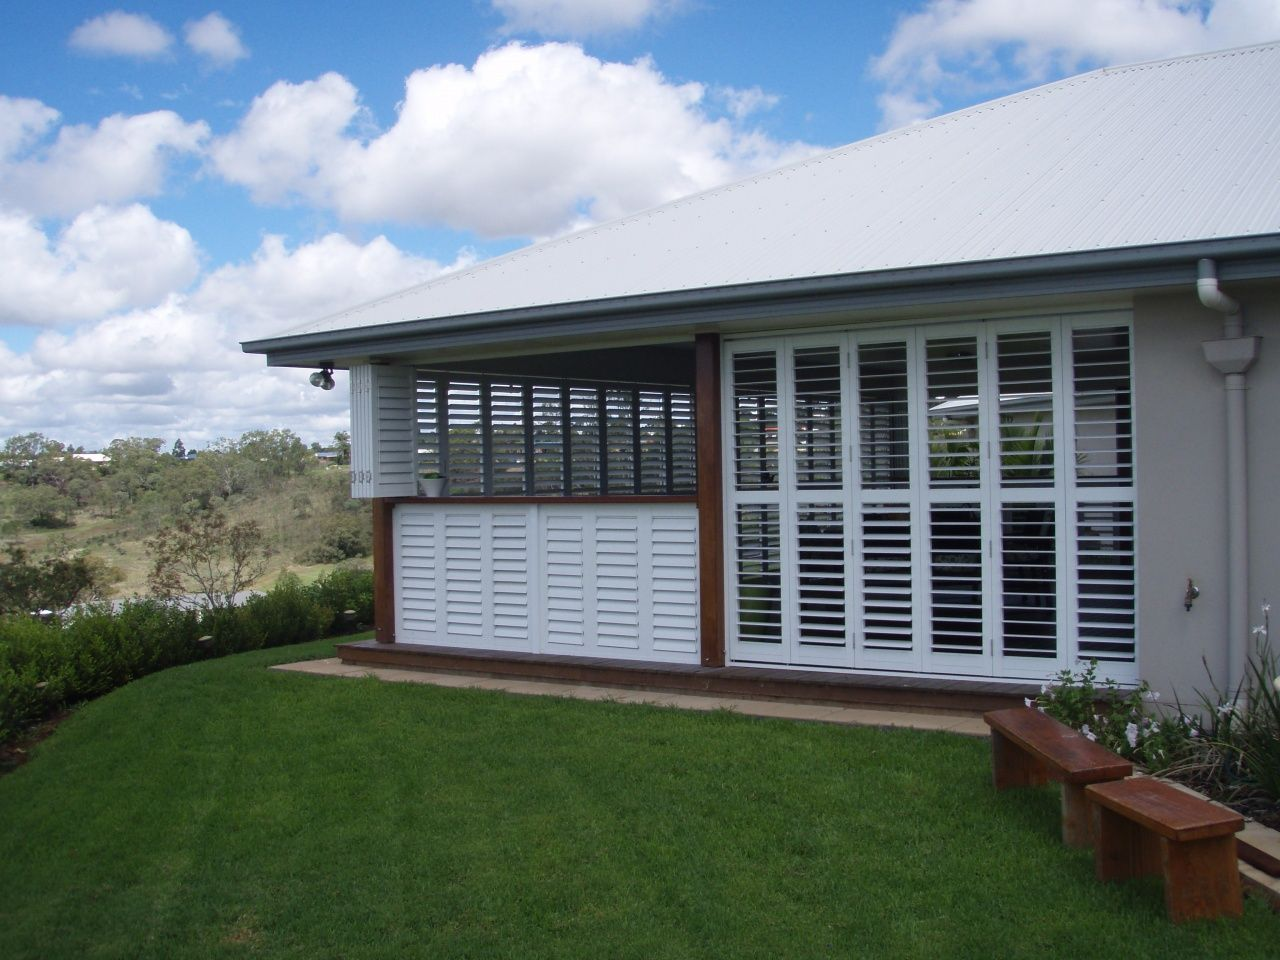 Exterior Pictures Of Enclosed Porch In 2020 Outdoor Shutters Outdoor Blinds Patios Outdoor Blinds